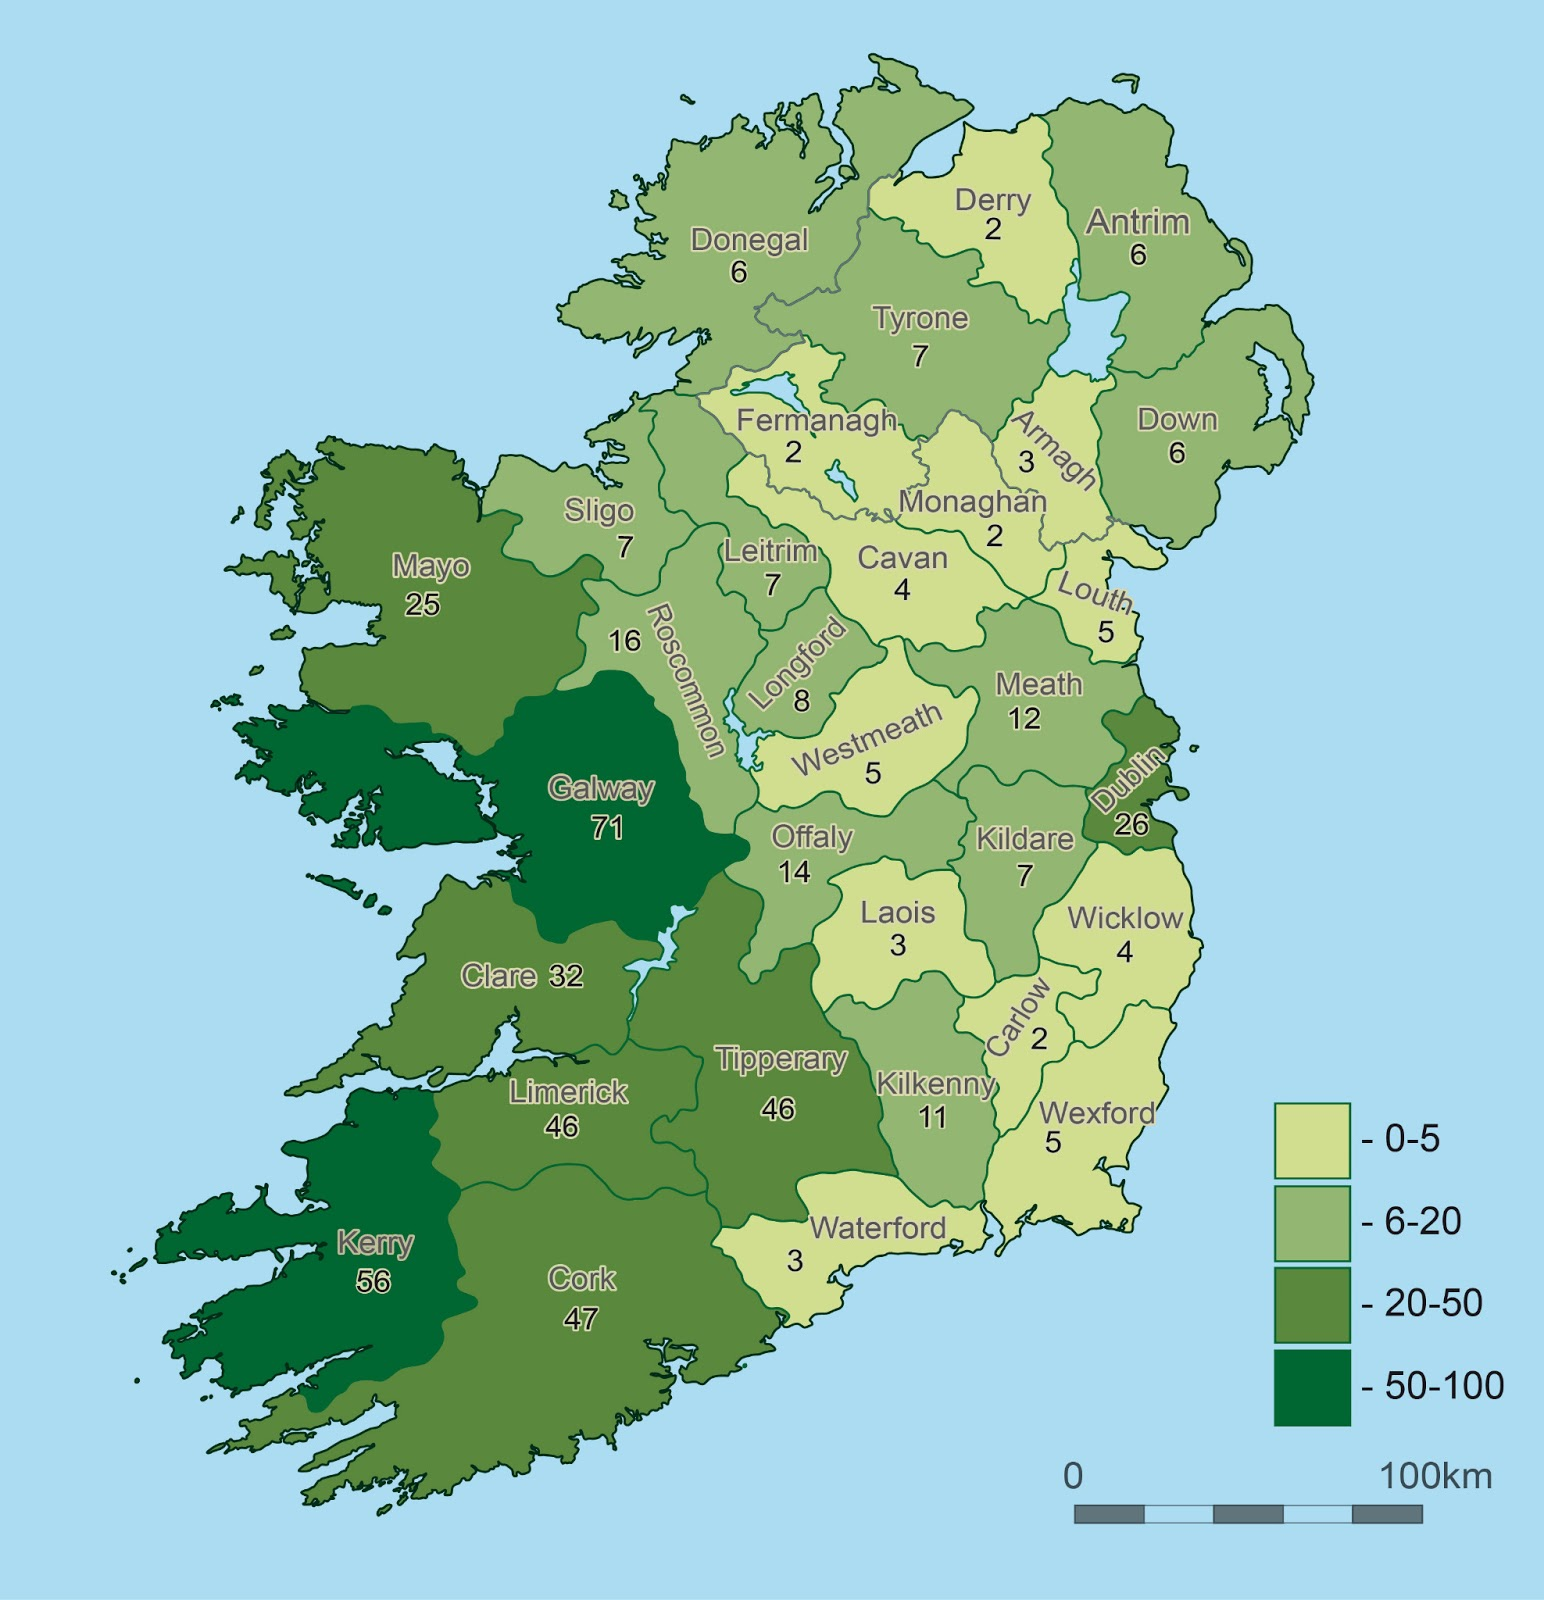 Map Of Ireland 32.30b430 Visit All 32 Counties In Ireland The Moral Black Hole